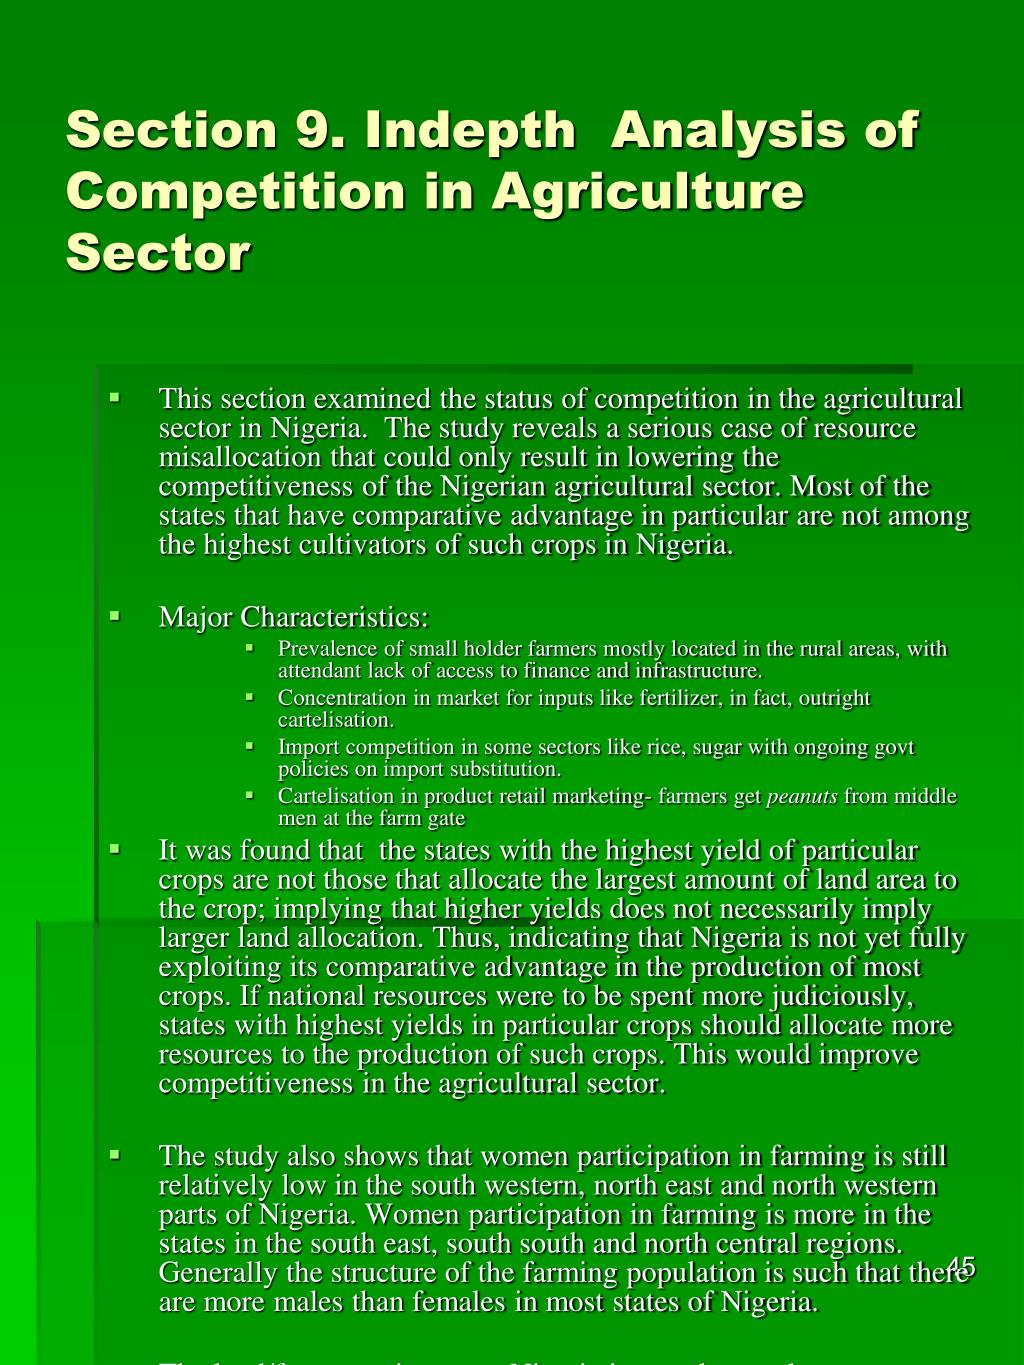 Section 9. Indepth  Analysis of Competition in Agriculture Sector